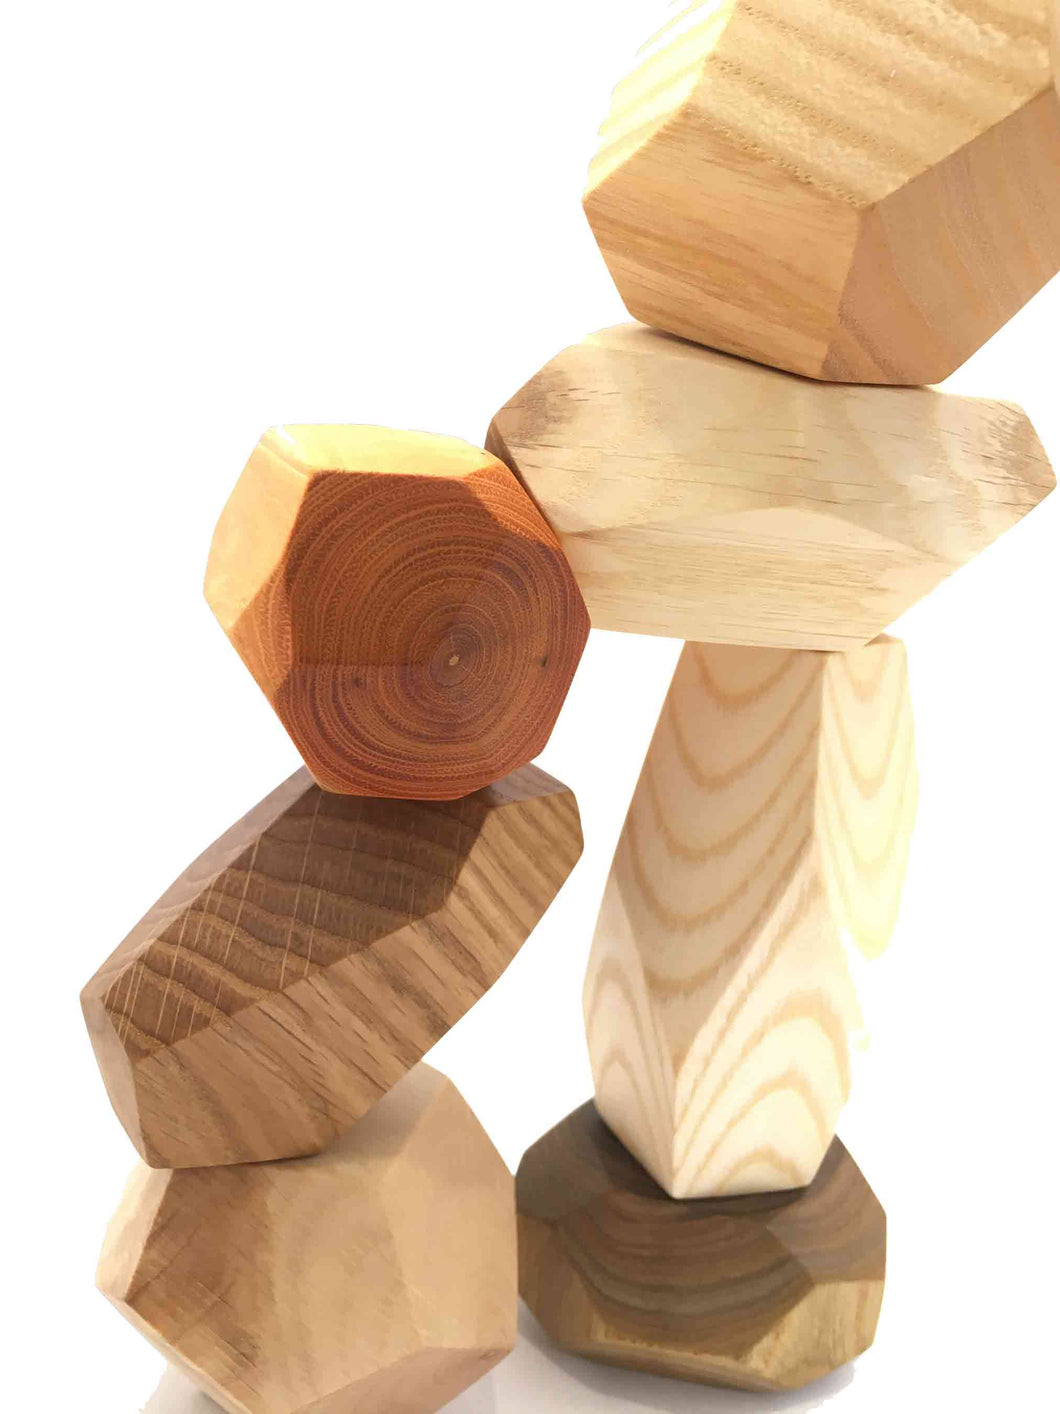 Tumi Ishi Wood Balancing Stacking Stones - Different Breeds of Wood Set of 7 - Montessori Toys - SimplytoPlay